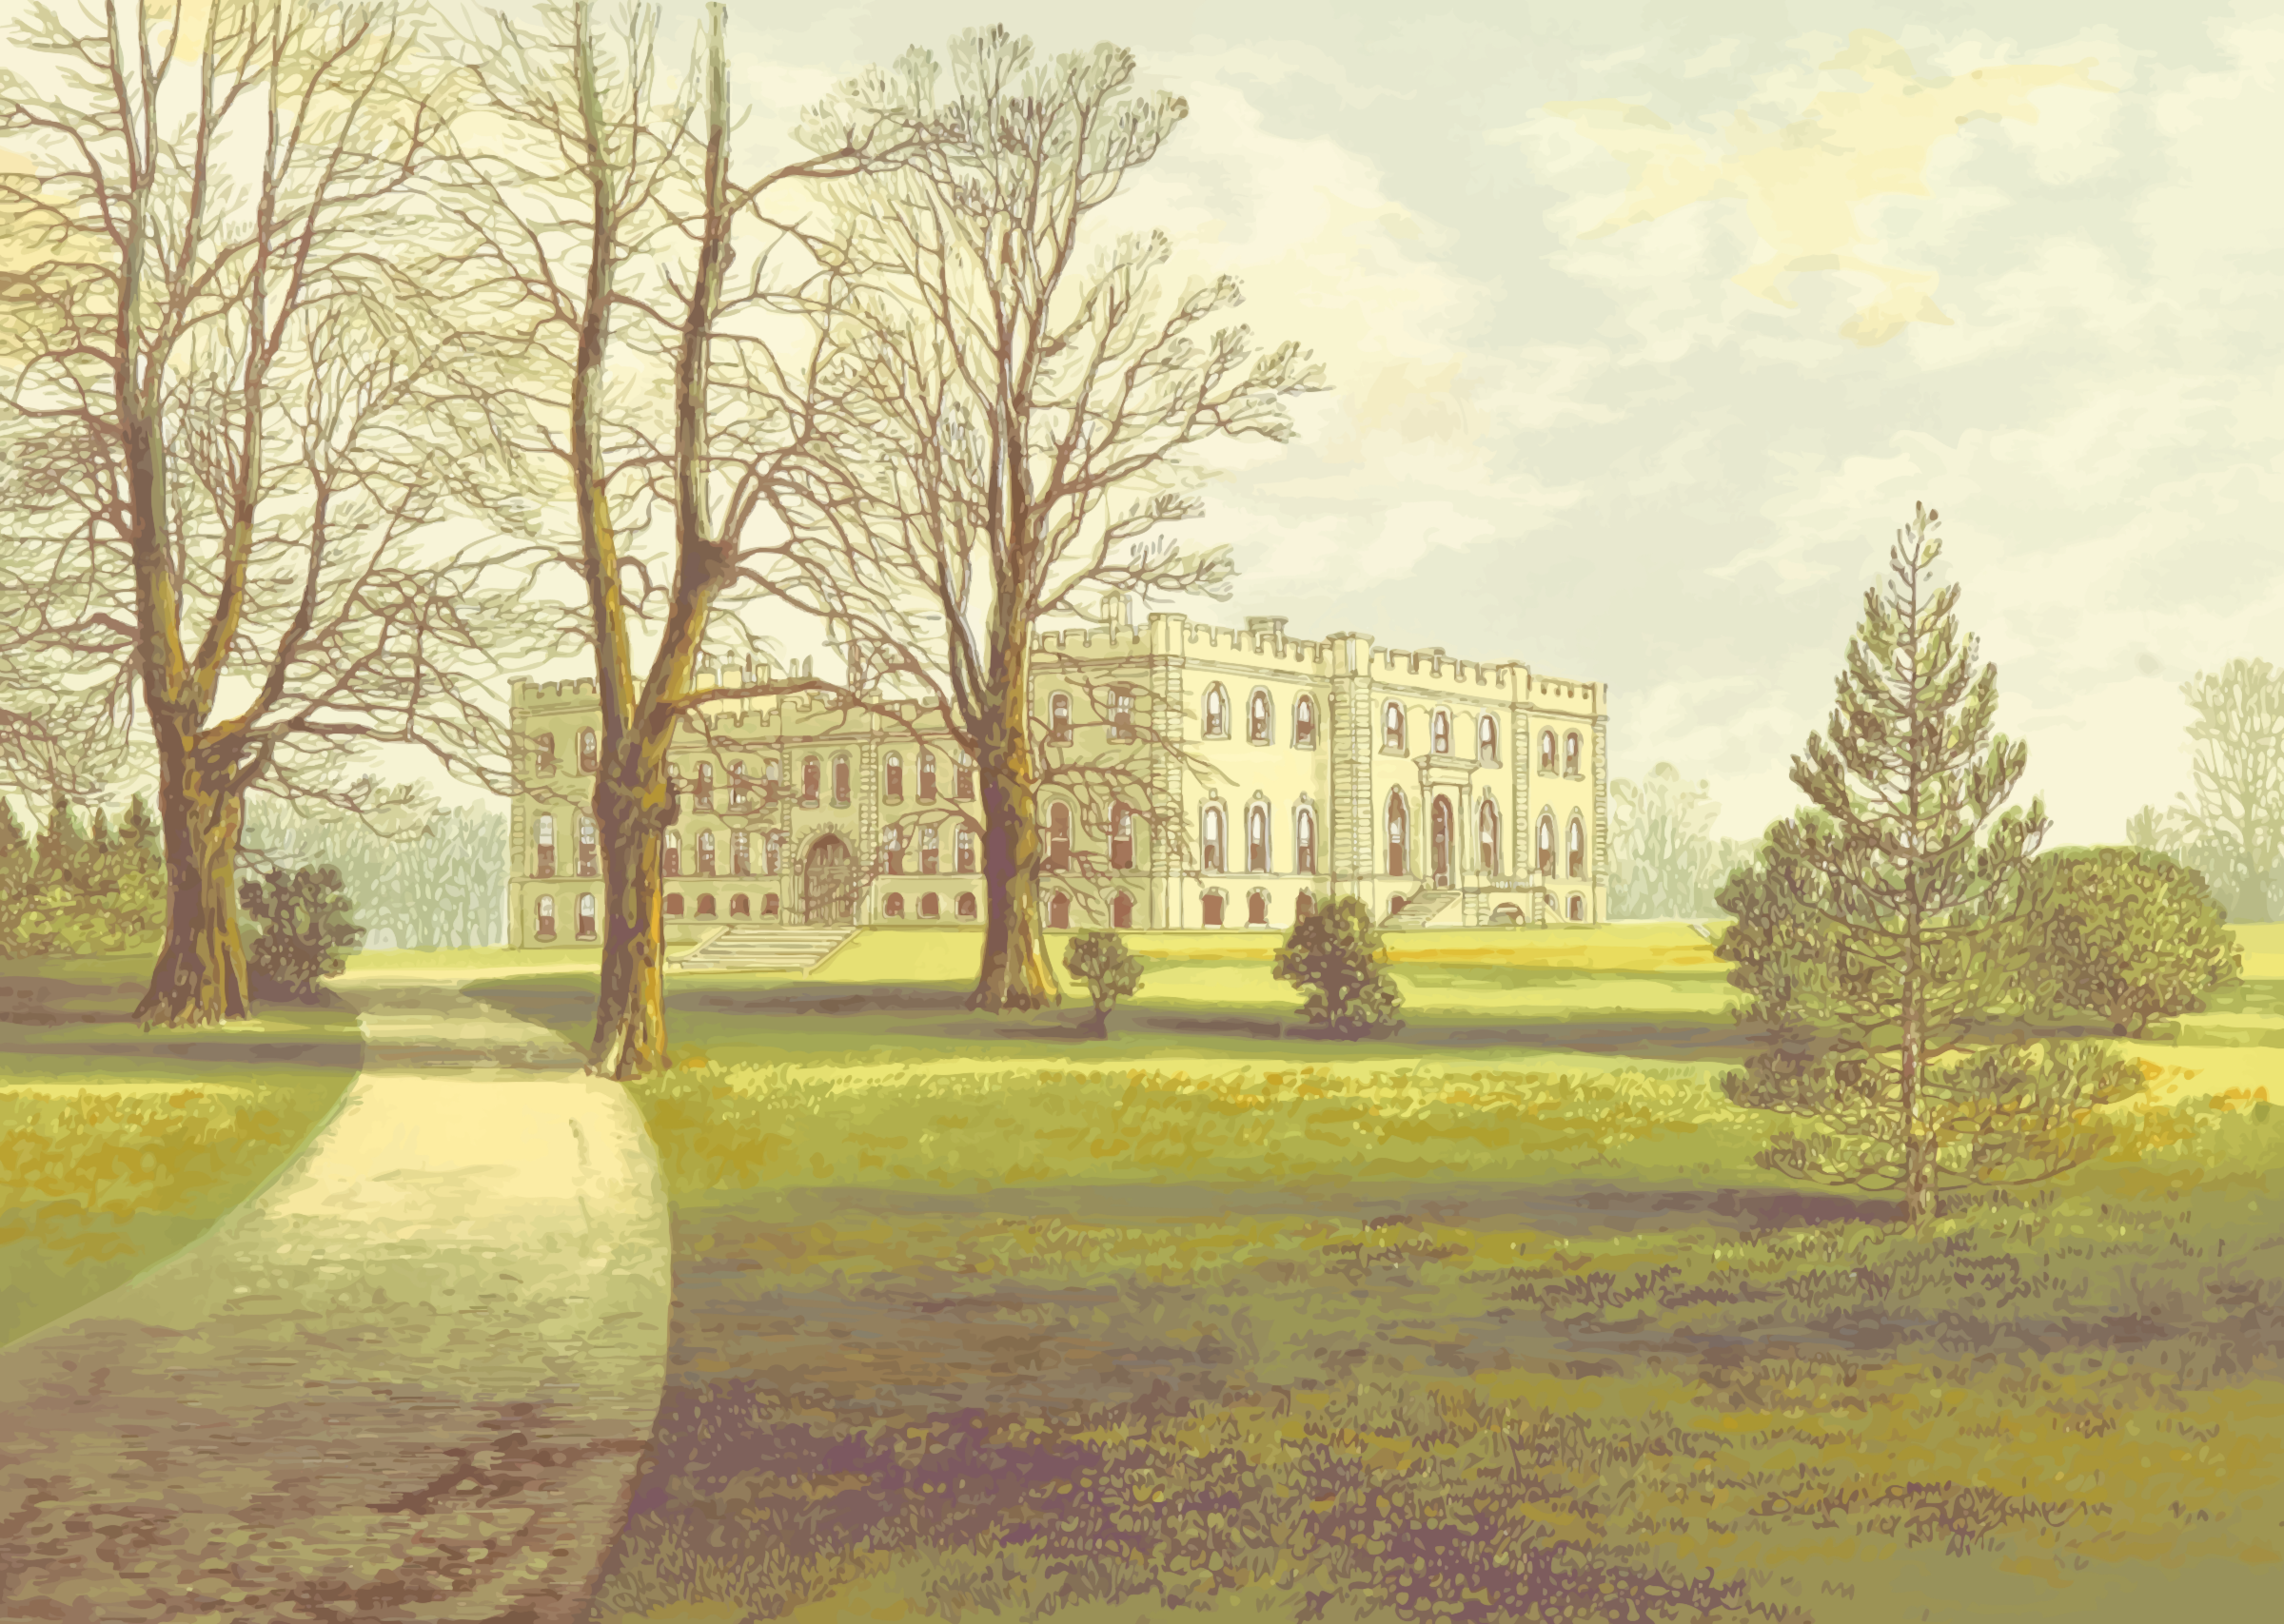 Kimbolton Castle by Firkin